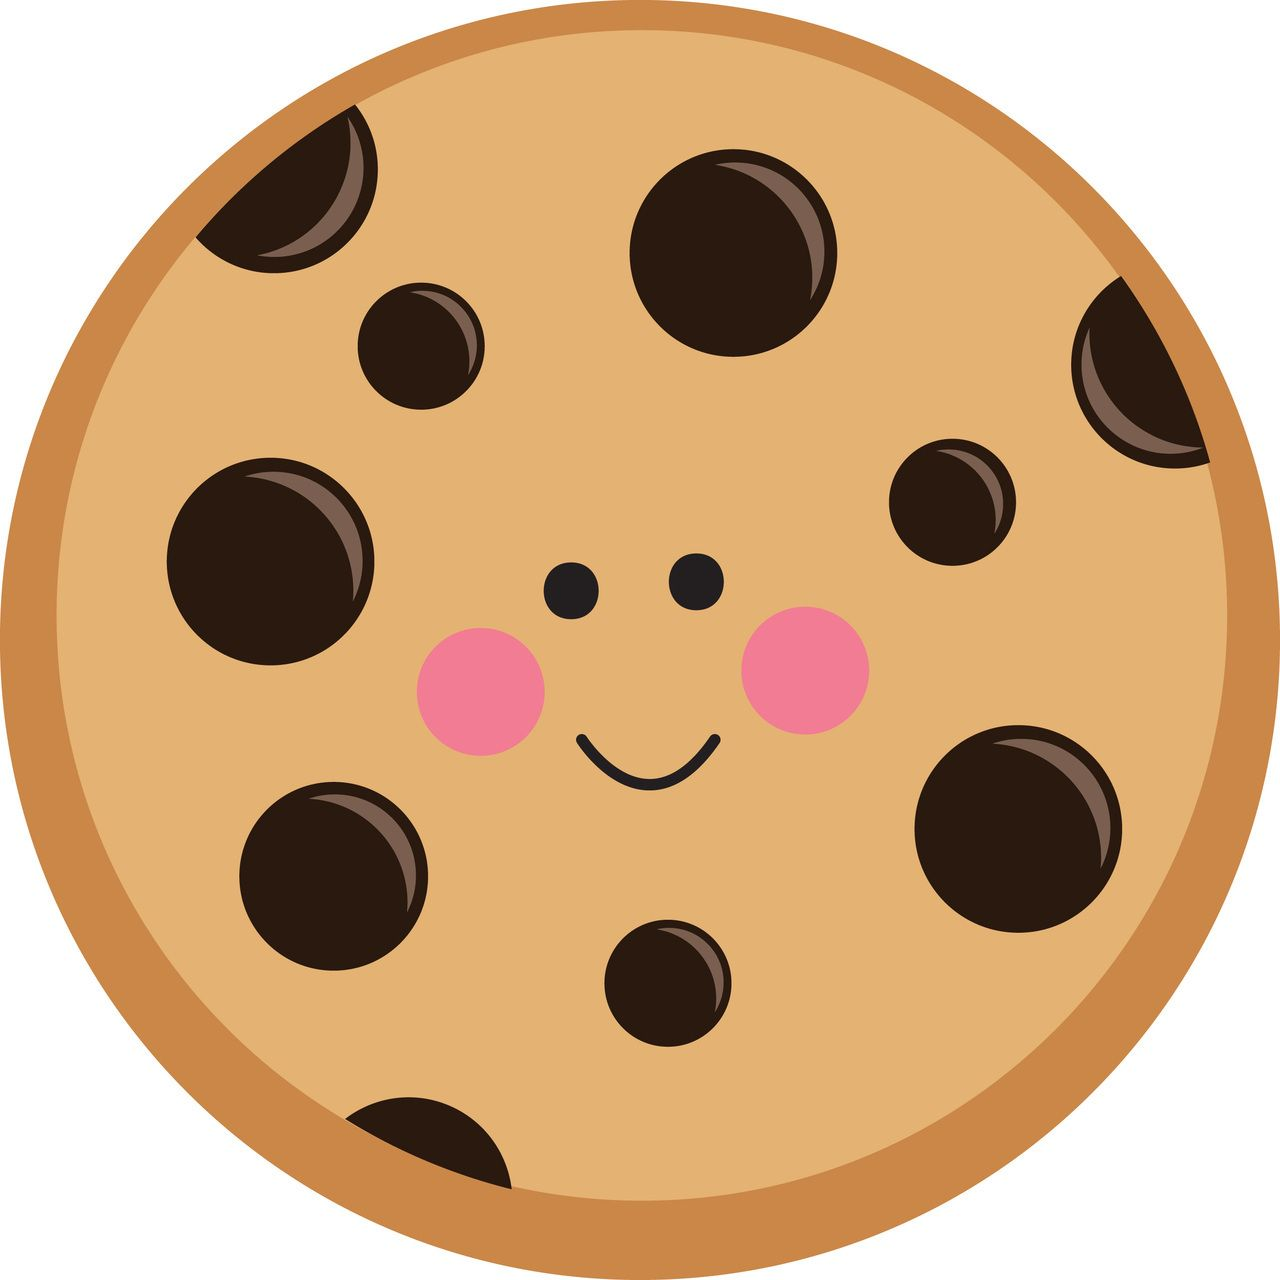 Chips clipart cute. Chocolate chip cookie off